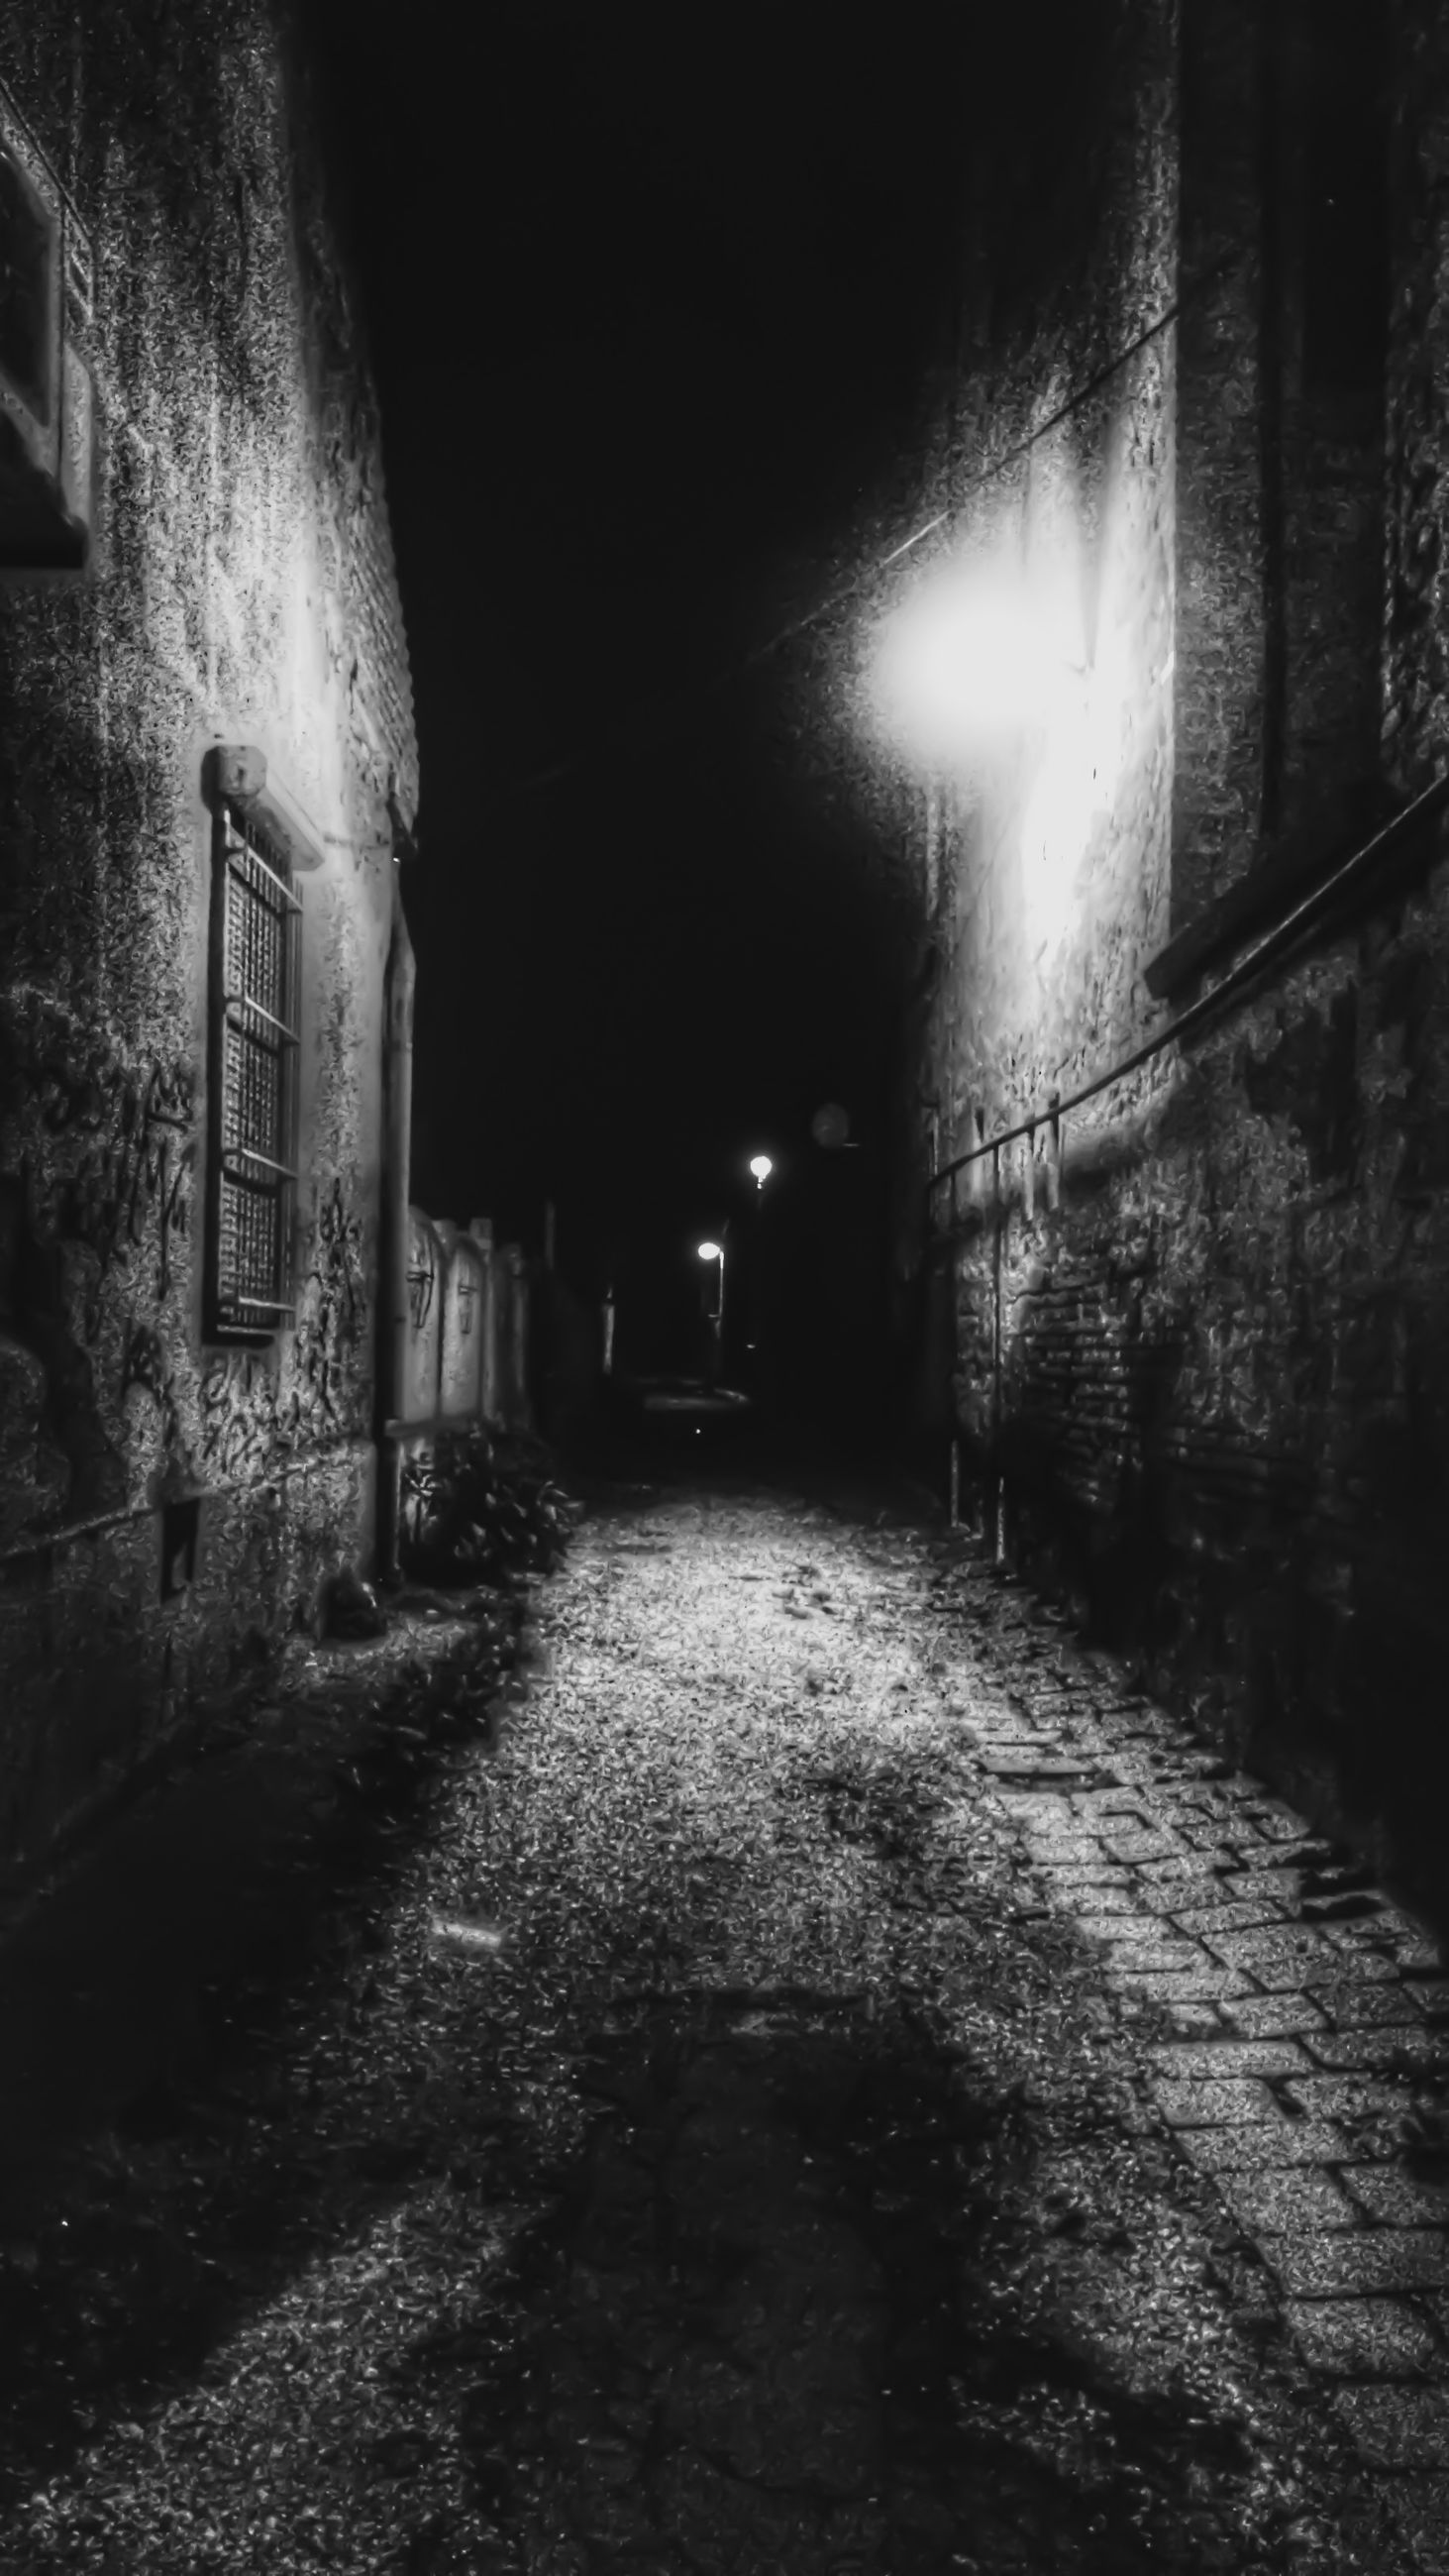 illuminated, the way forward, architecture, night, built structure, building exterior, lighting equipment, diminishing perspective, street, street light, alley, building, narrow, vanishing point, cobblestone, empty, city, light - natural phenomenon, wall - building feature, residential structure